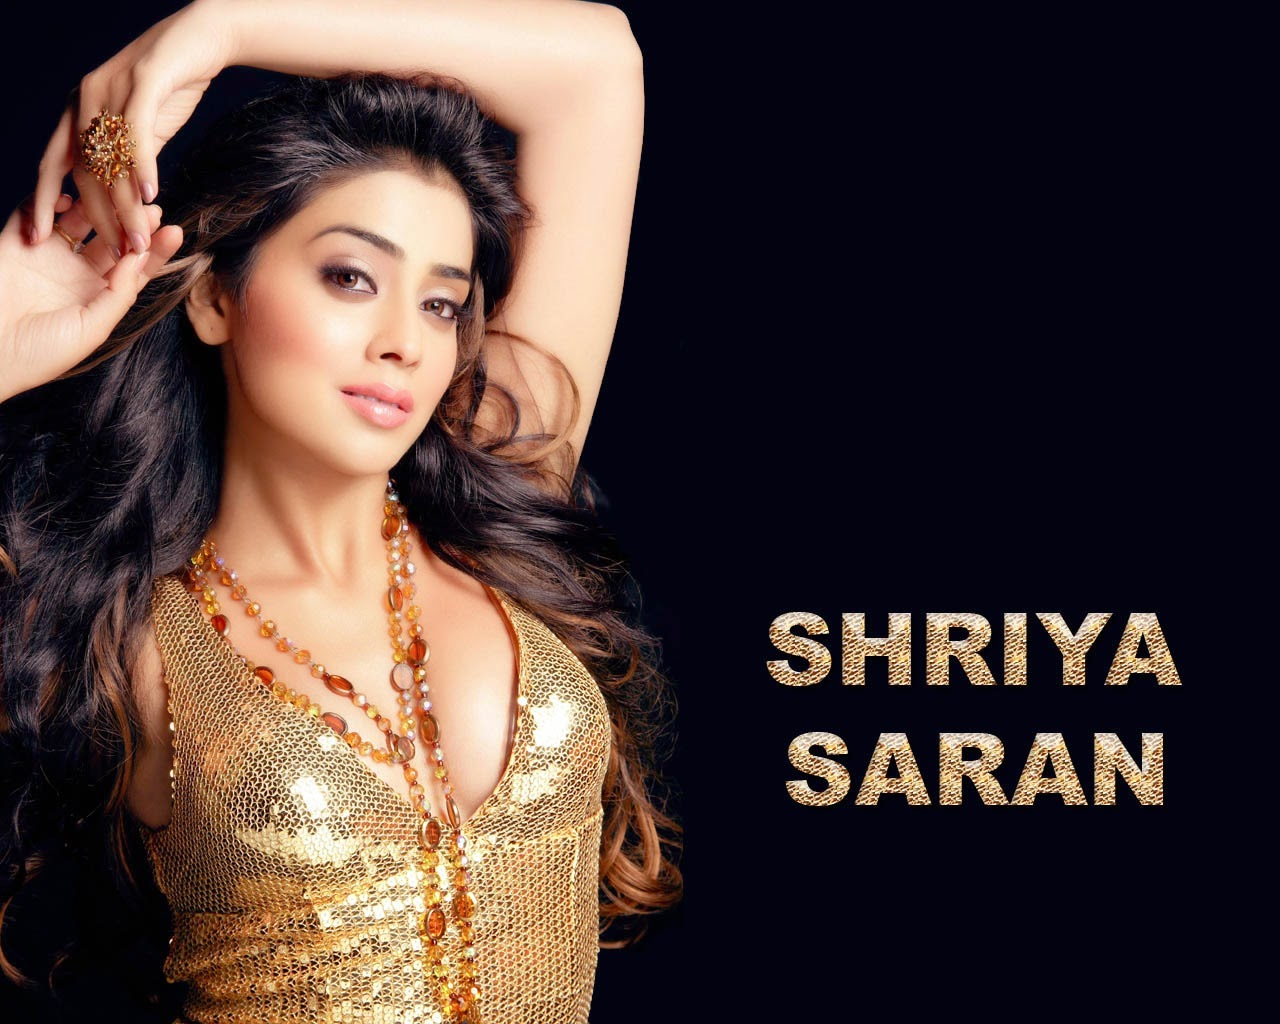 wallpapers wisely: shriya saran full hd wallpapers